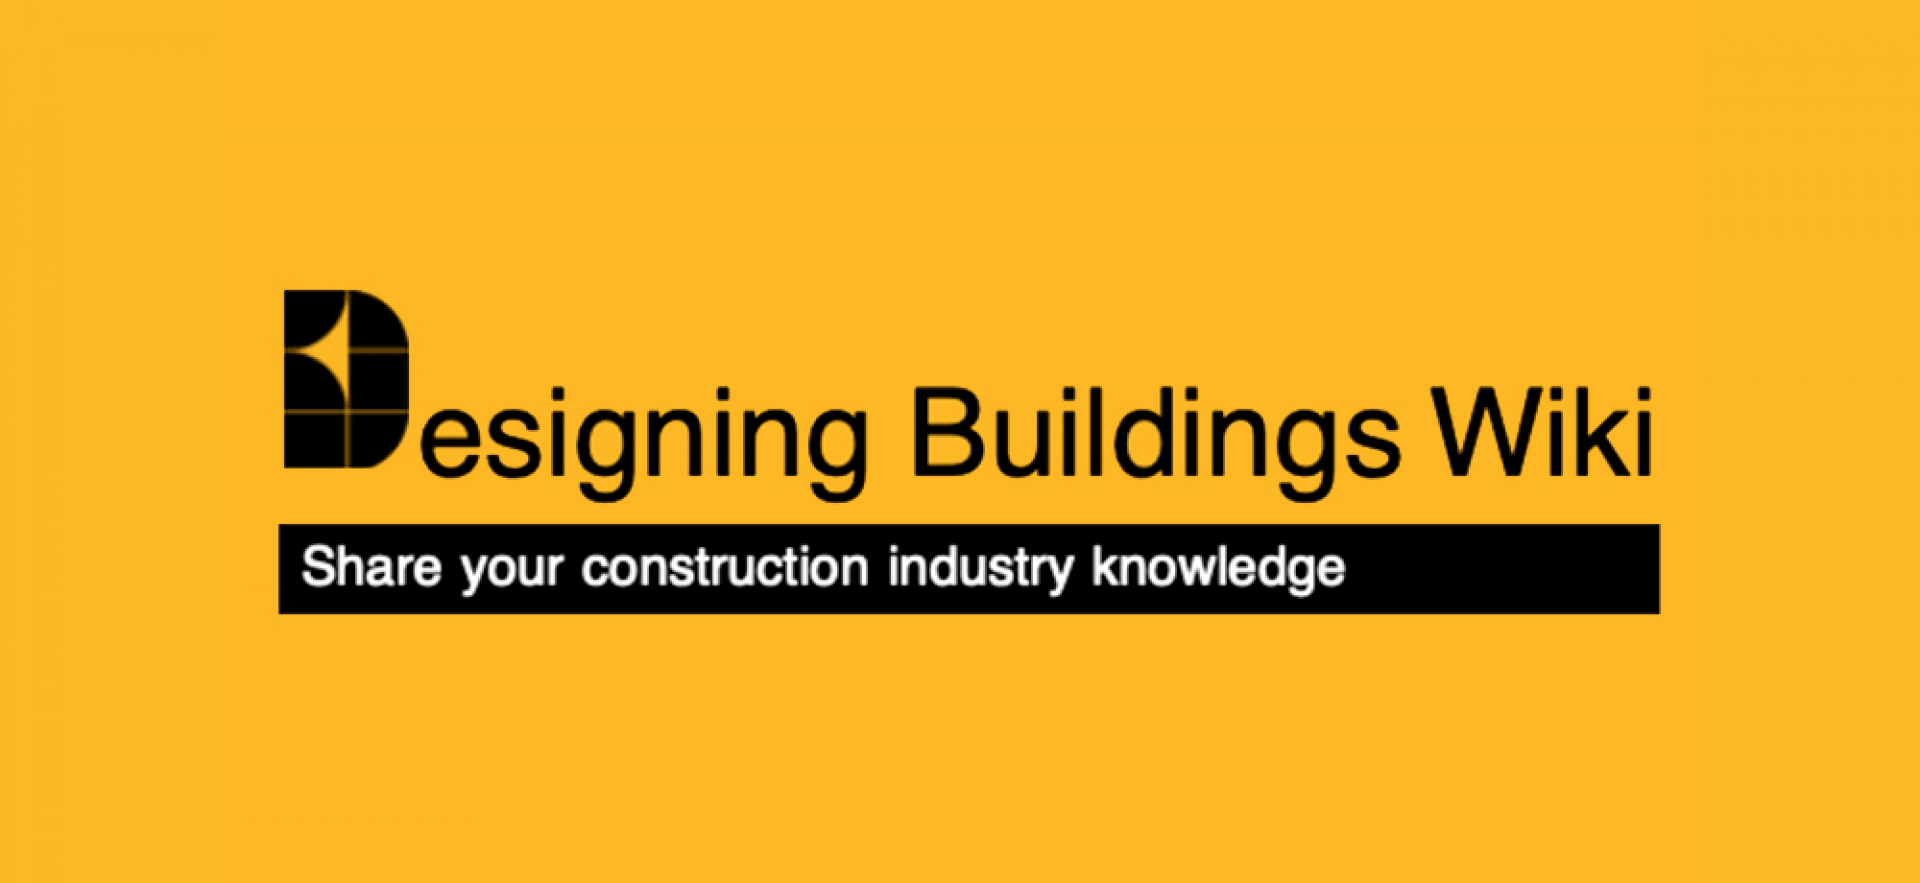 Designing Buildings Wiki